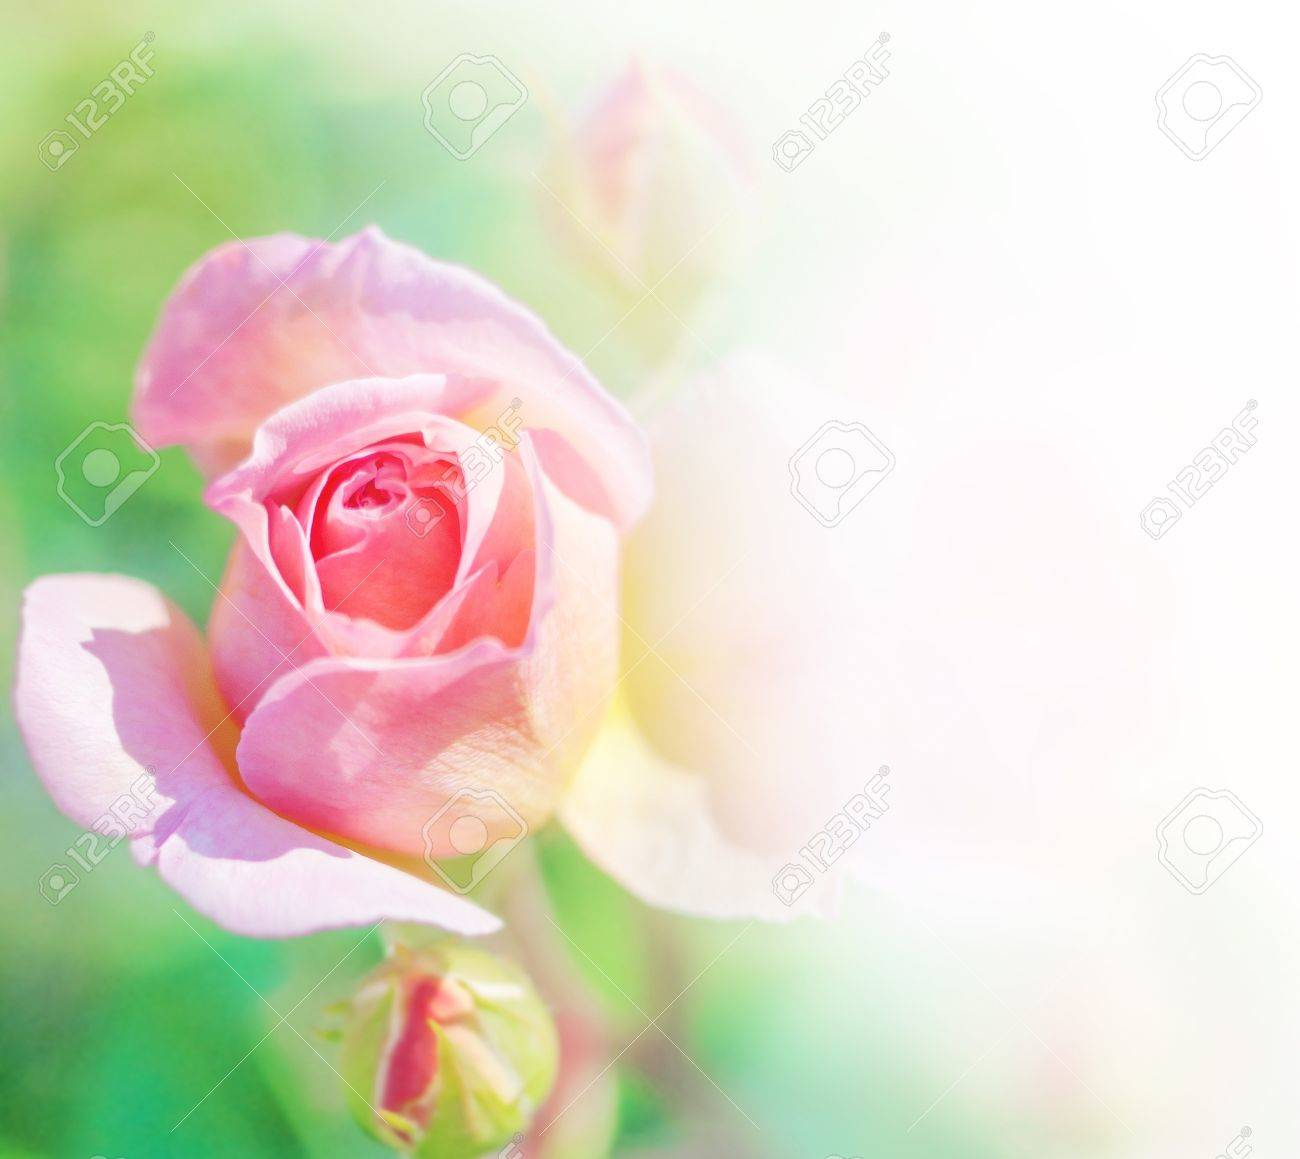 bouquet of pink roses with a border for text Stock Photo - 13779532